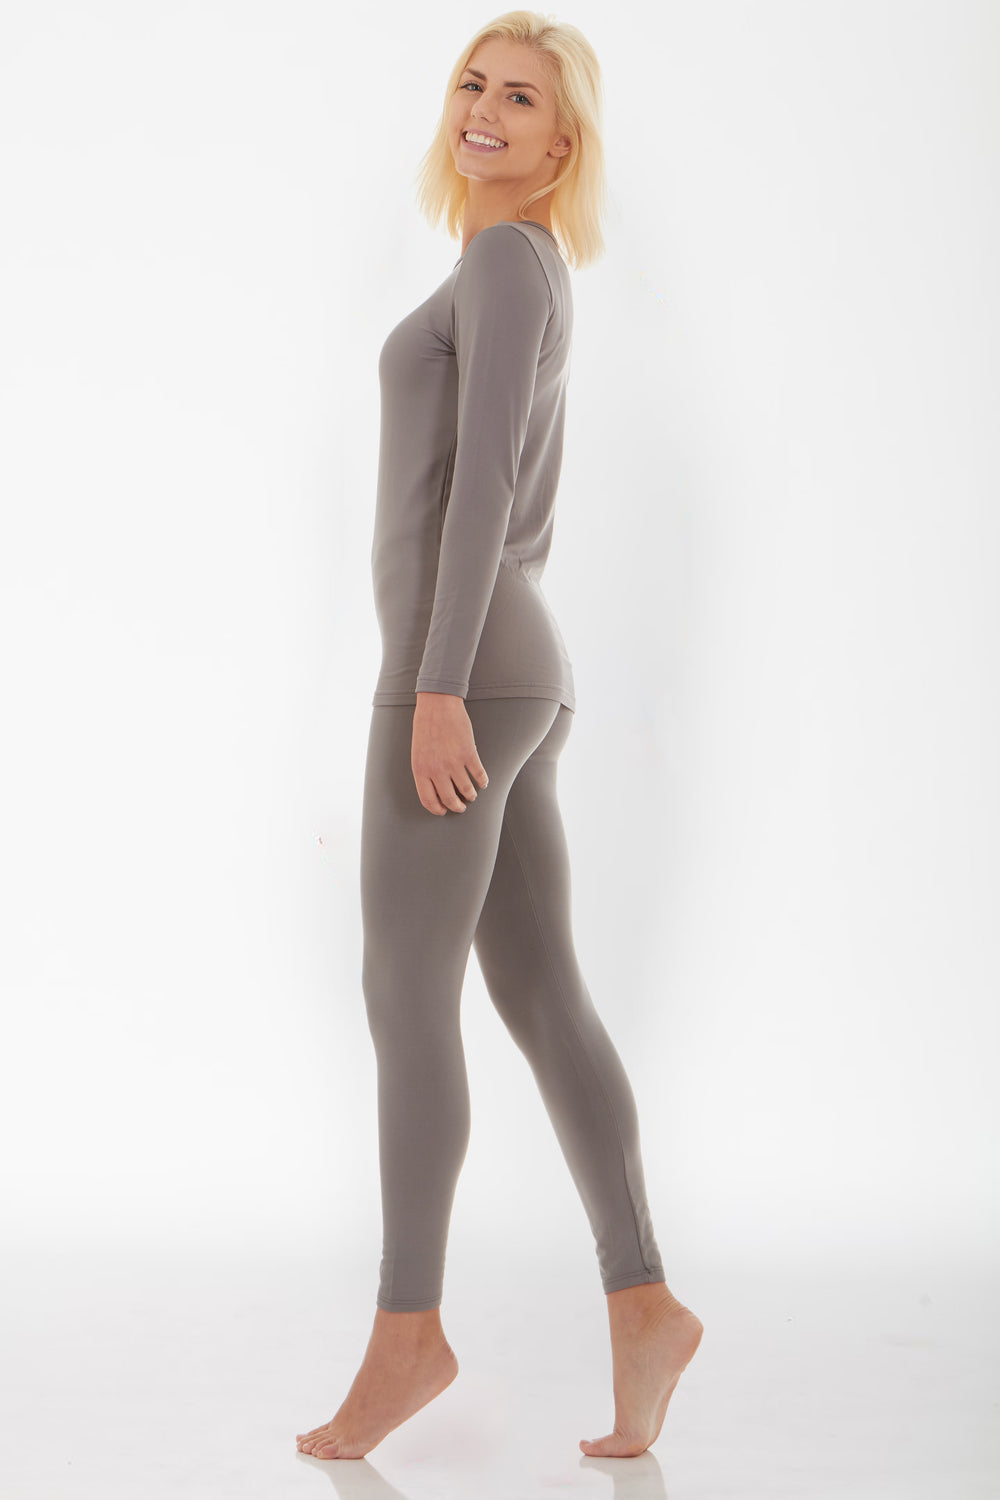 Women's Grey Thermal Underwear Set